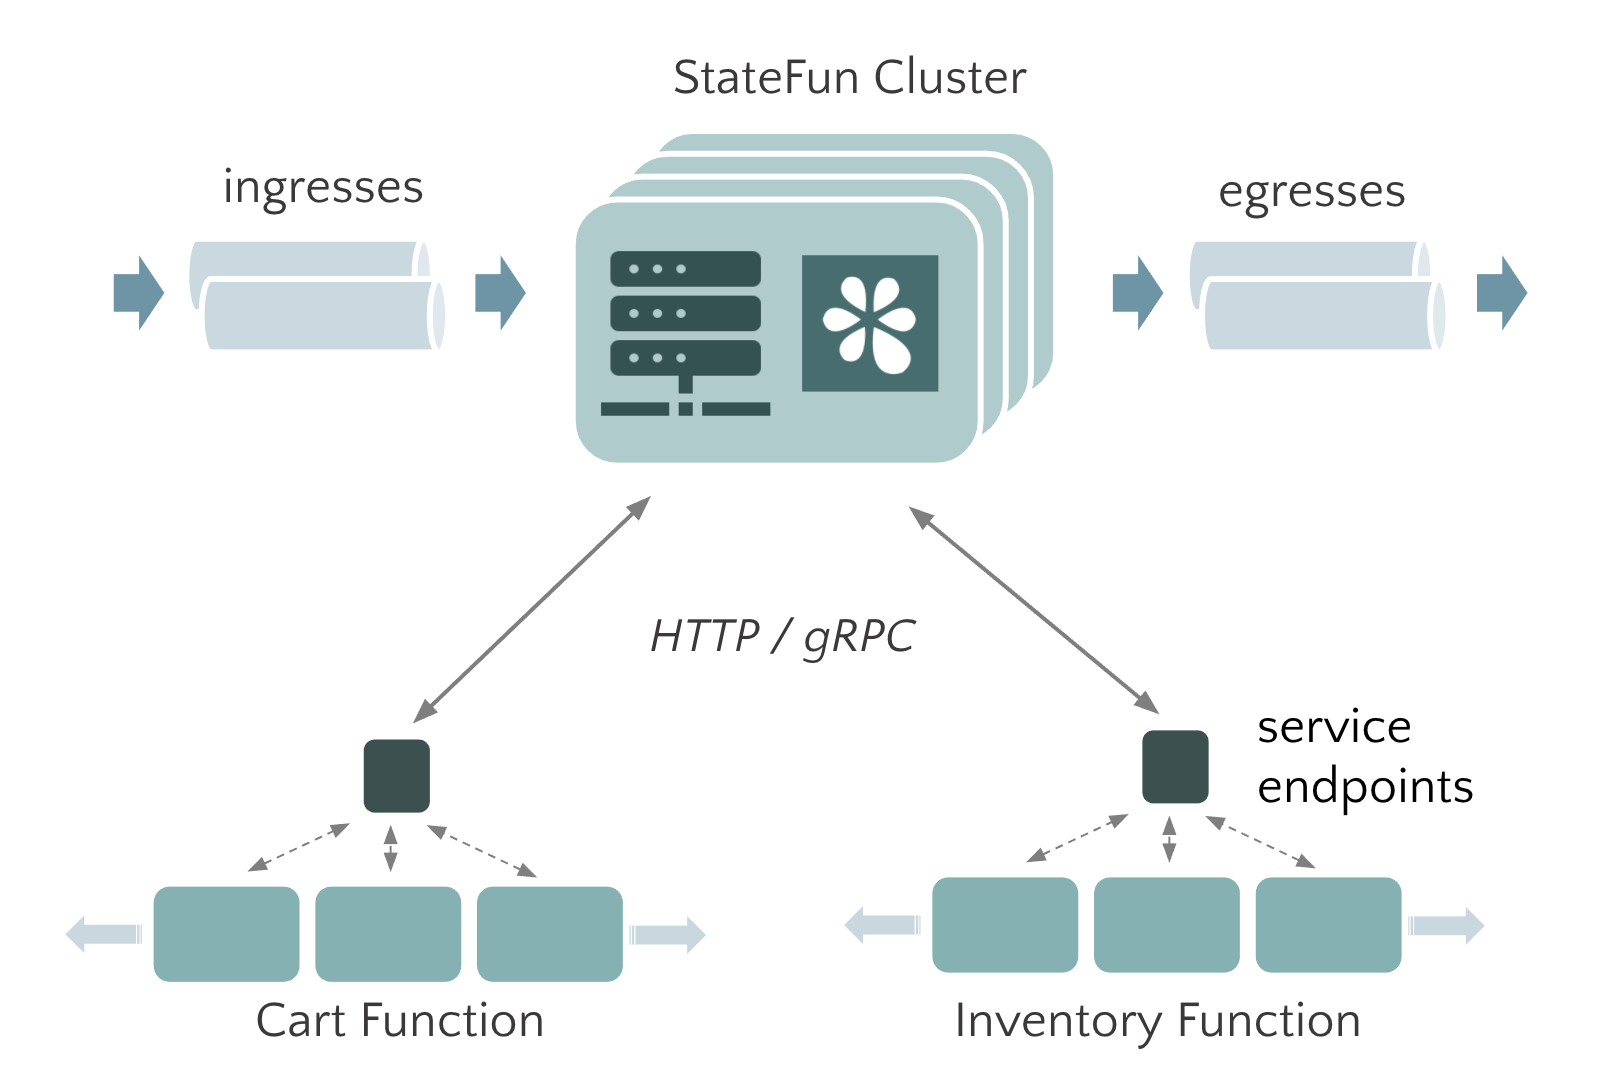 Simplified view of a StateFun app deployment